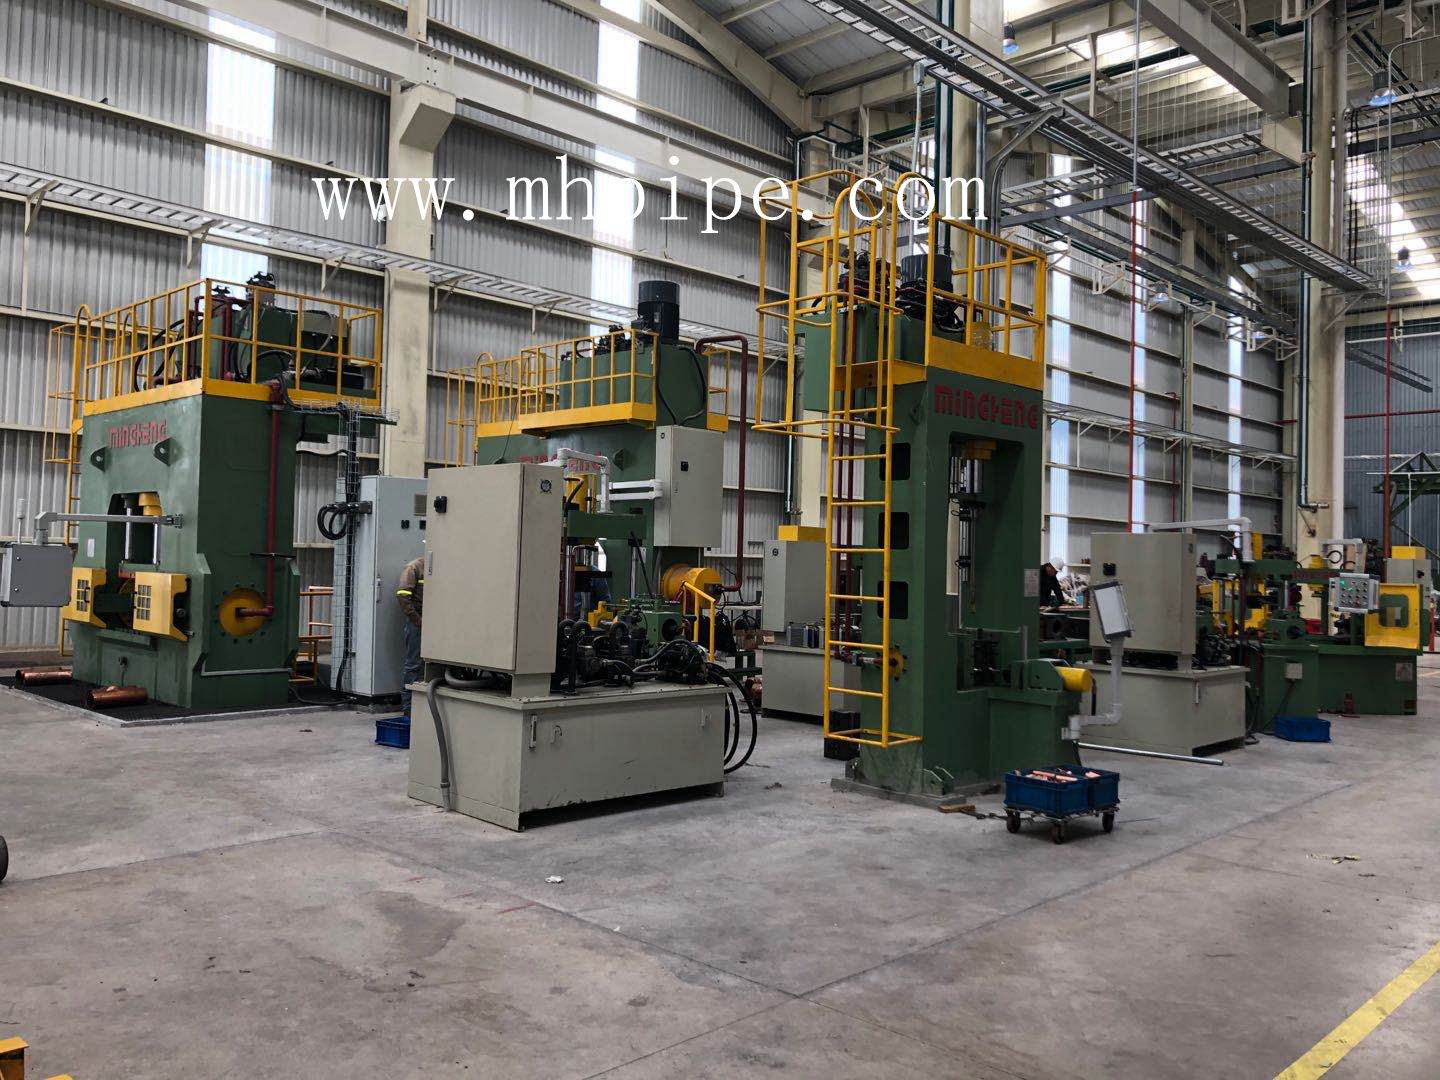 copper elbow machine, copper tee machine and beveling machine finished installation and commissioning in our Mexico customer